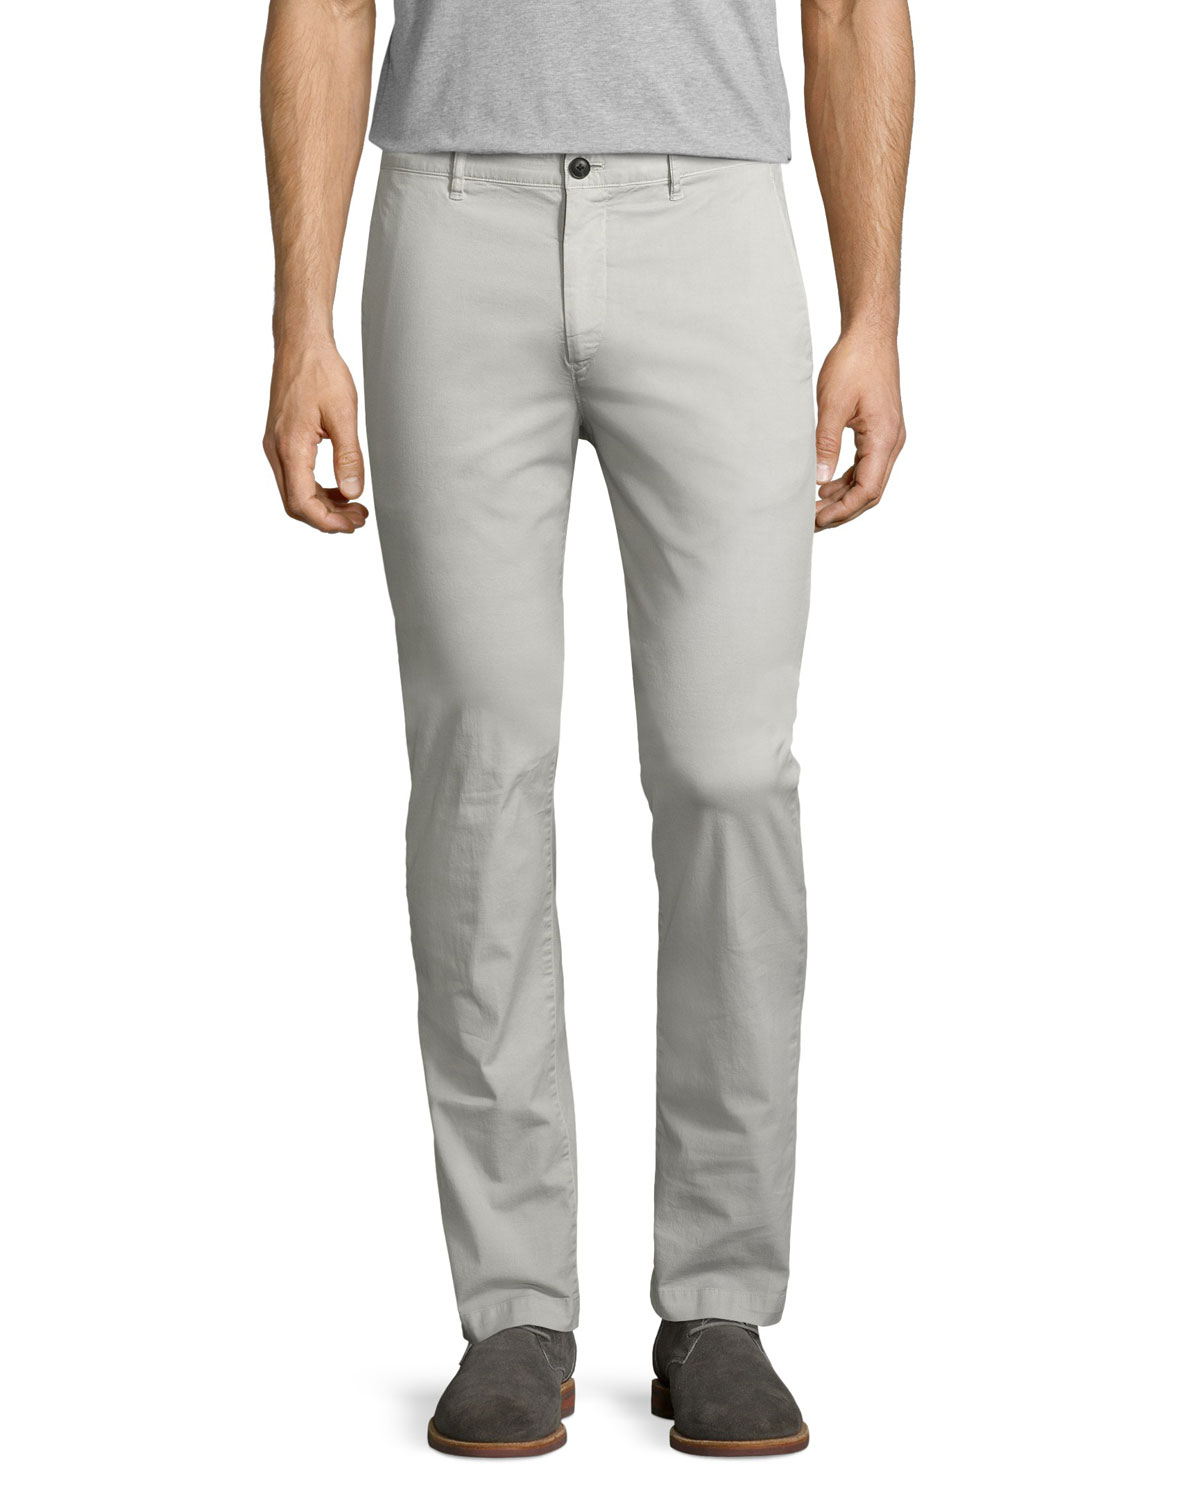 Zaine SW Patton Chino Pants, Light Gray